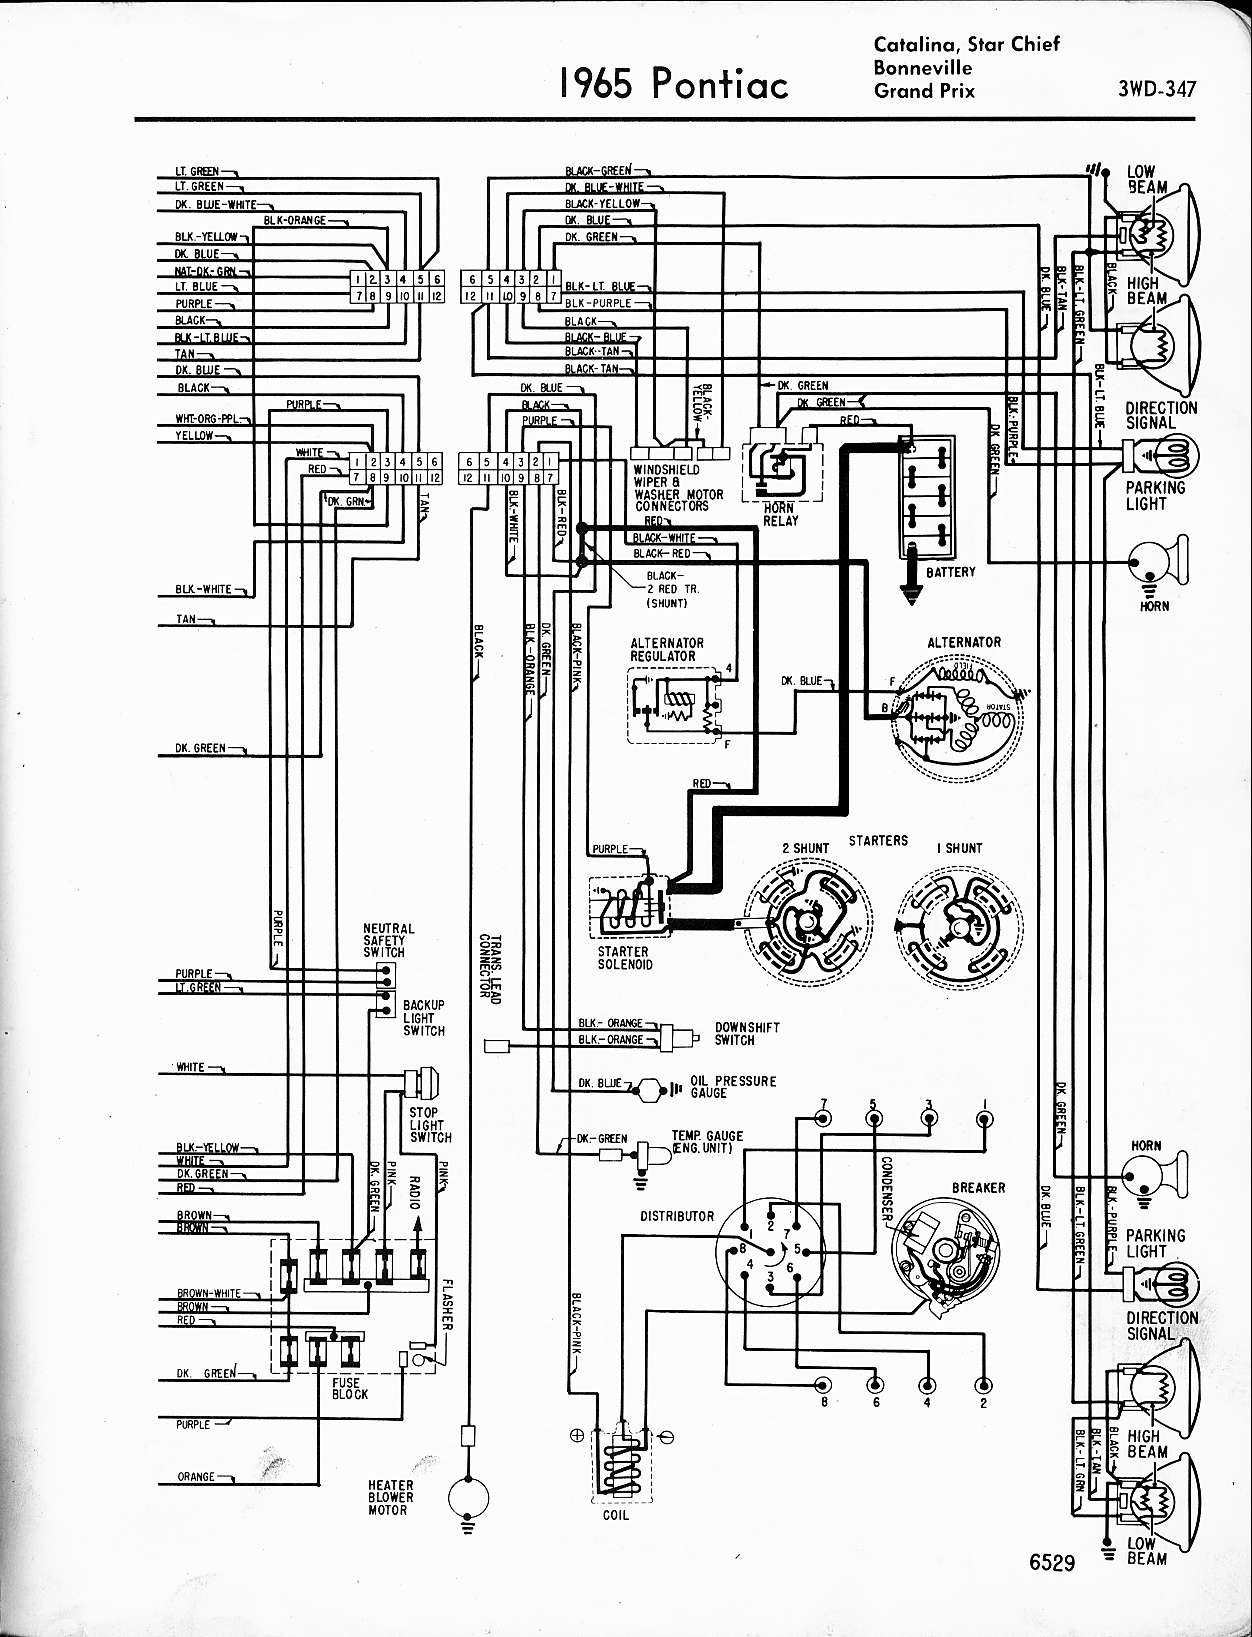 1966 pontiac catalina wiring diagram wiring diagram u2022 rh msblog co 1968 pontiac wiring diagram pontiac radio wiring diagram